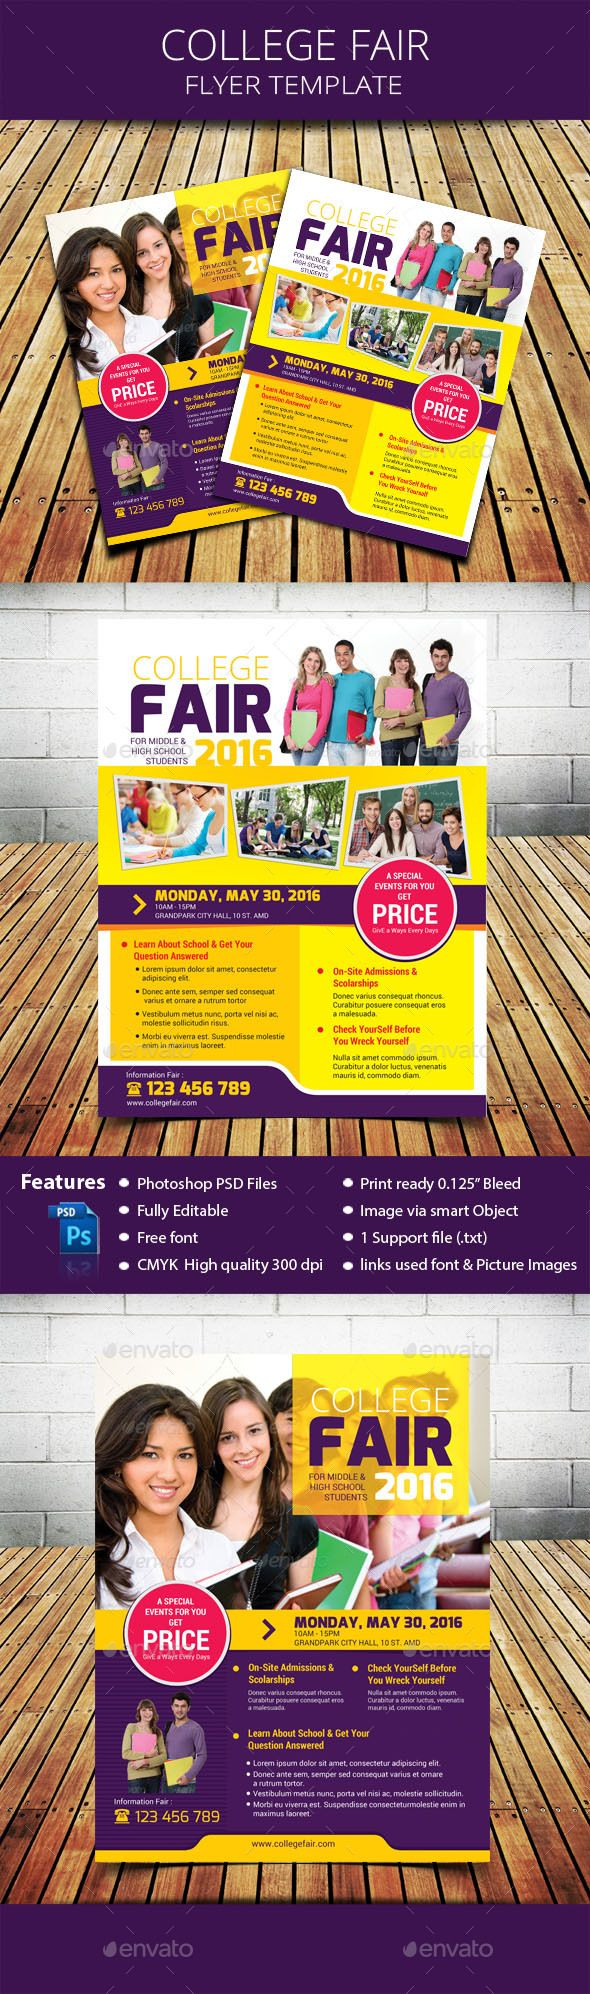 college fair flyer photoshop psd campus student available here